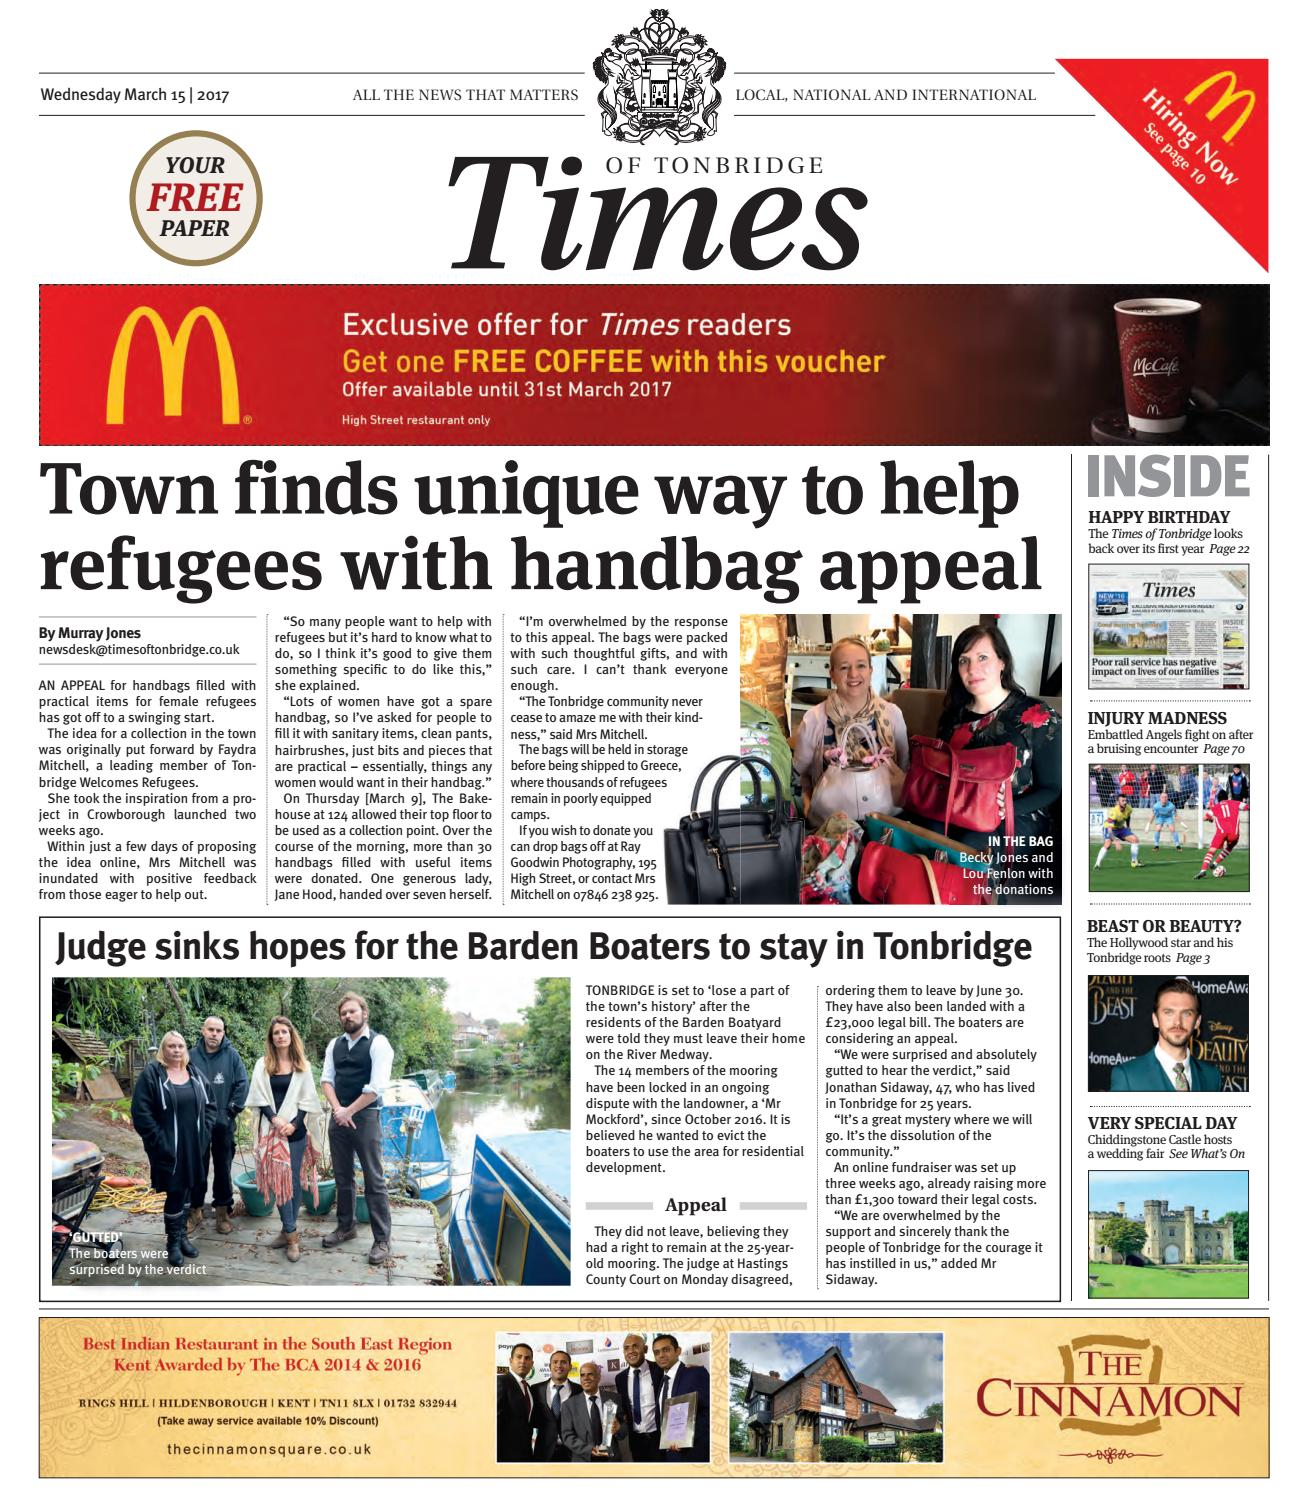 Times of tonbridge 15th march 2017 by one media issuu fandeluxe Image collections